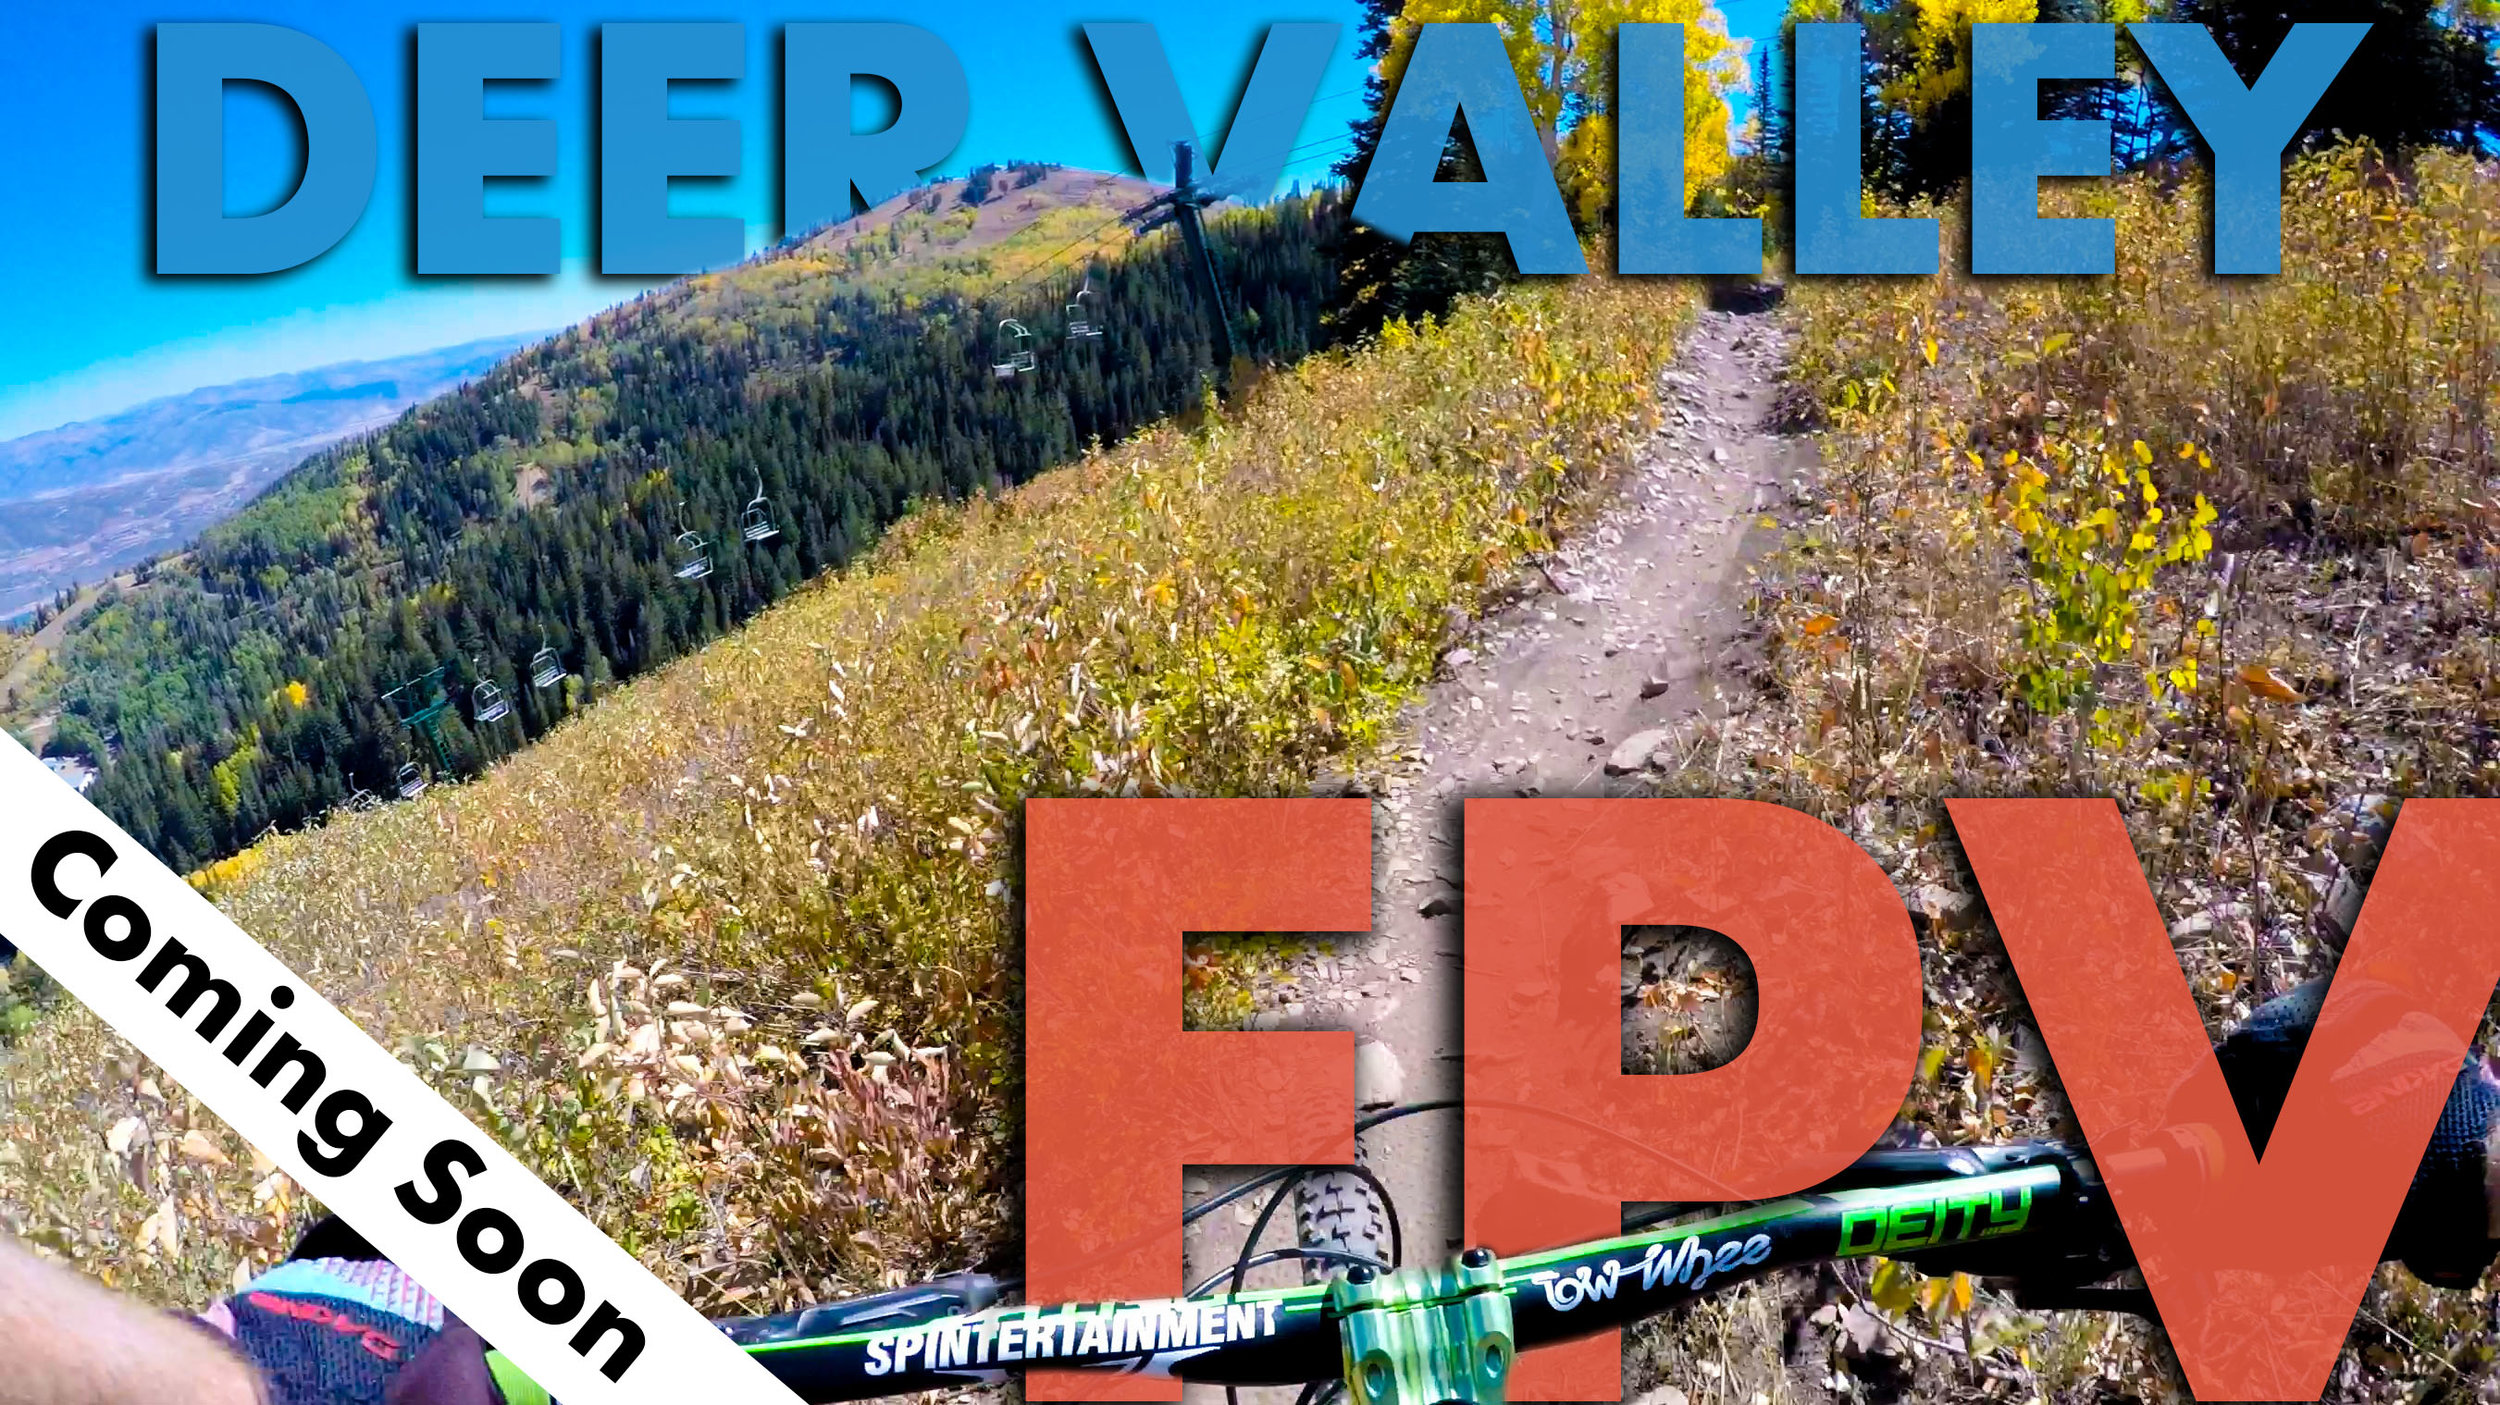 Deer Valley FPV Thumbnail Authentic COMING SOON.jpg